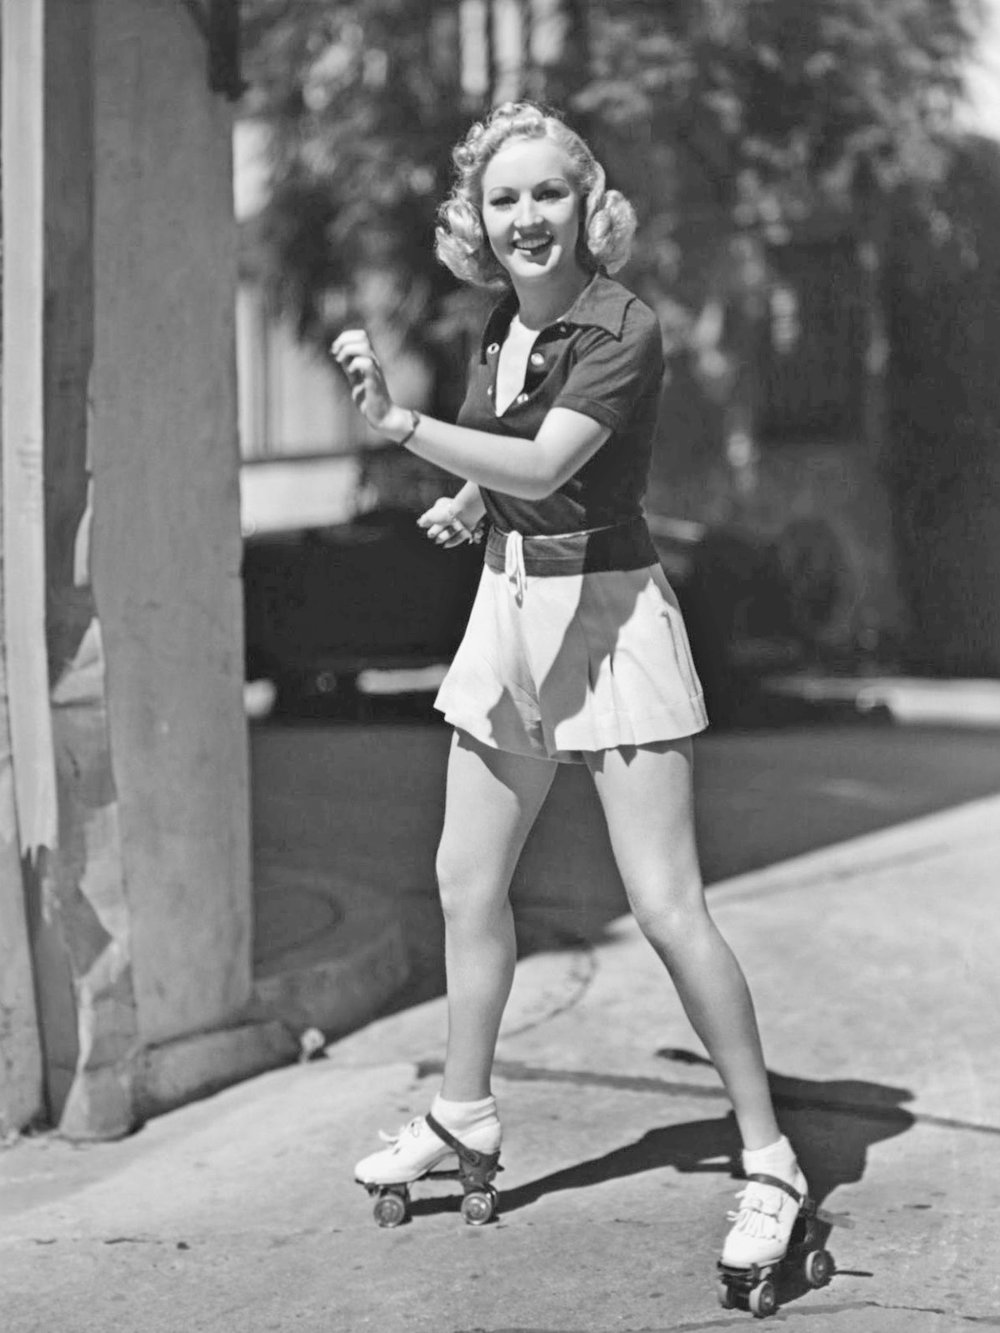 Betty Grable on roller skates circa 1937